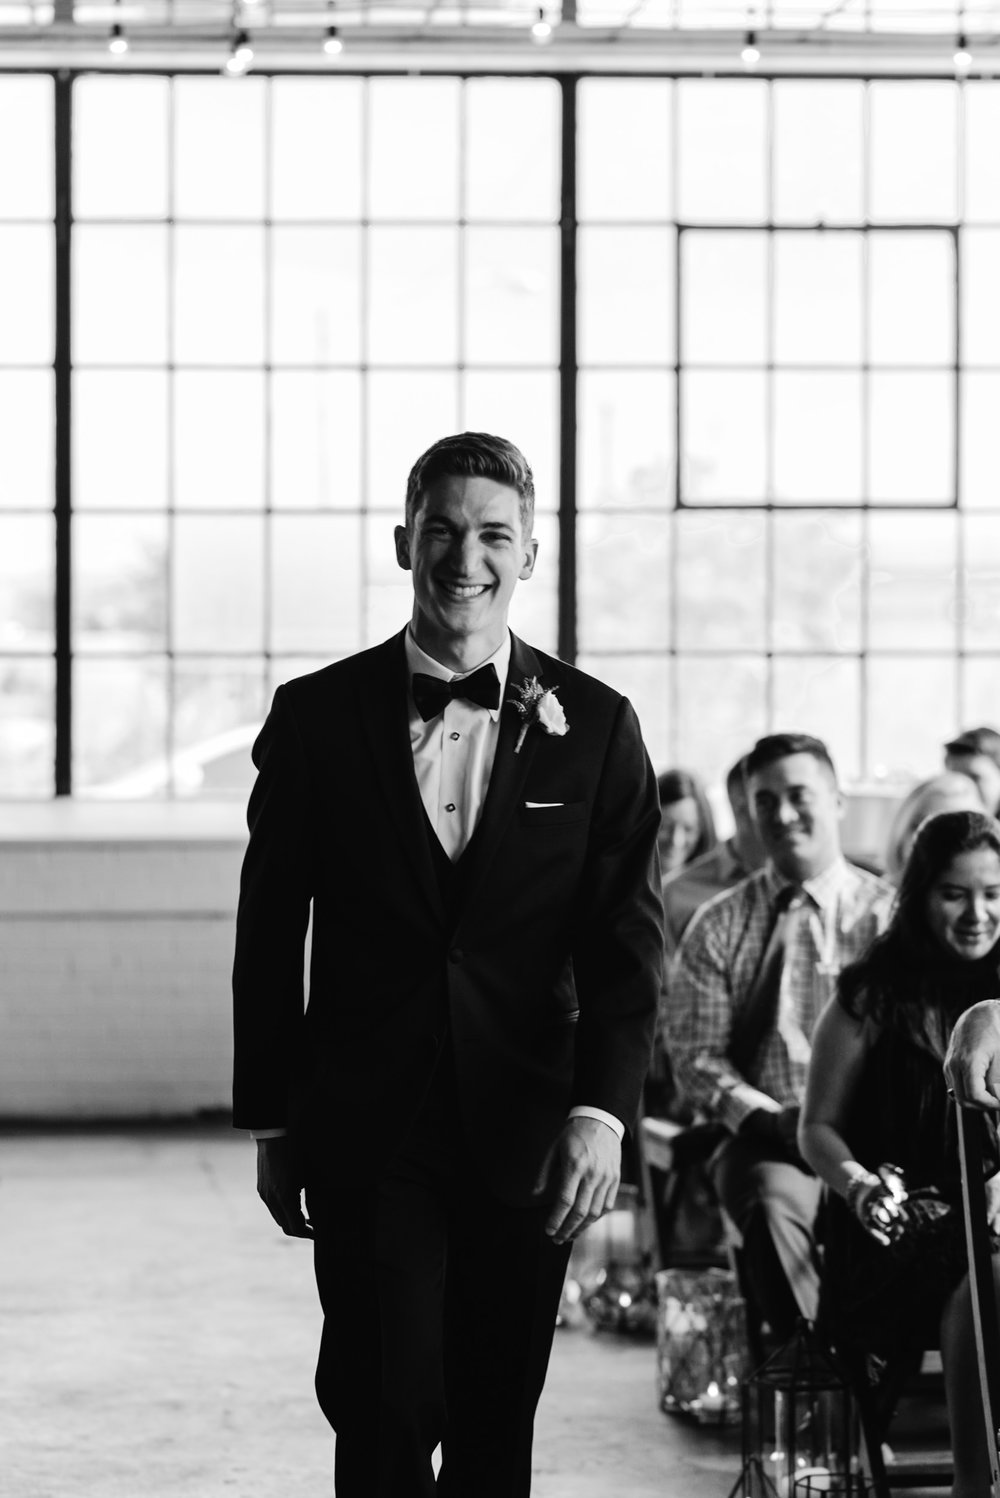 Groom walking down the isle at Moss Denver Wedding. Colorado wedding photographer.